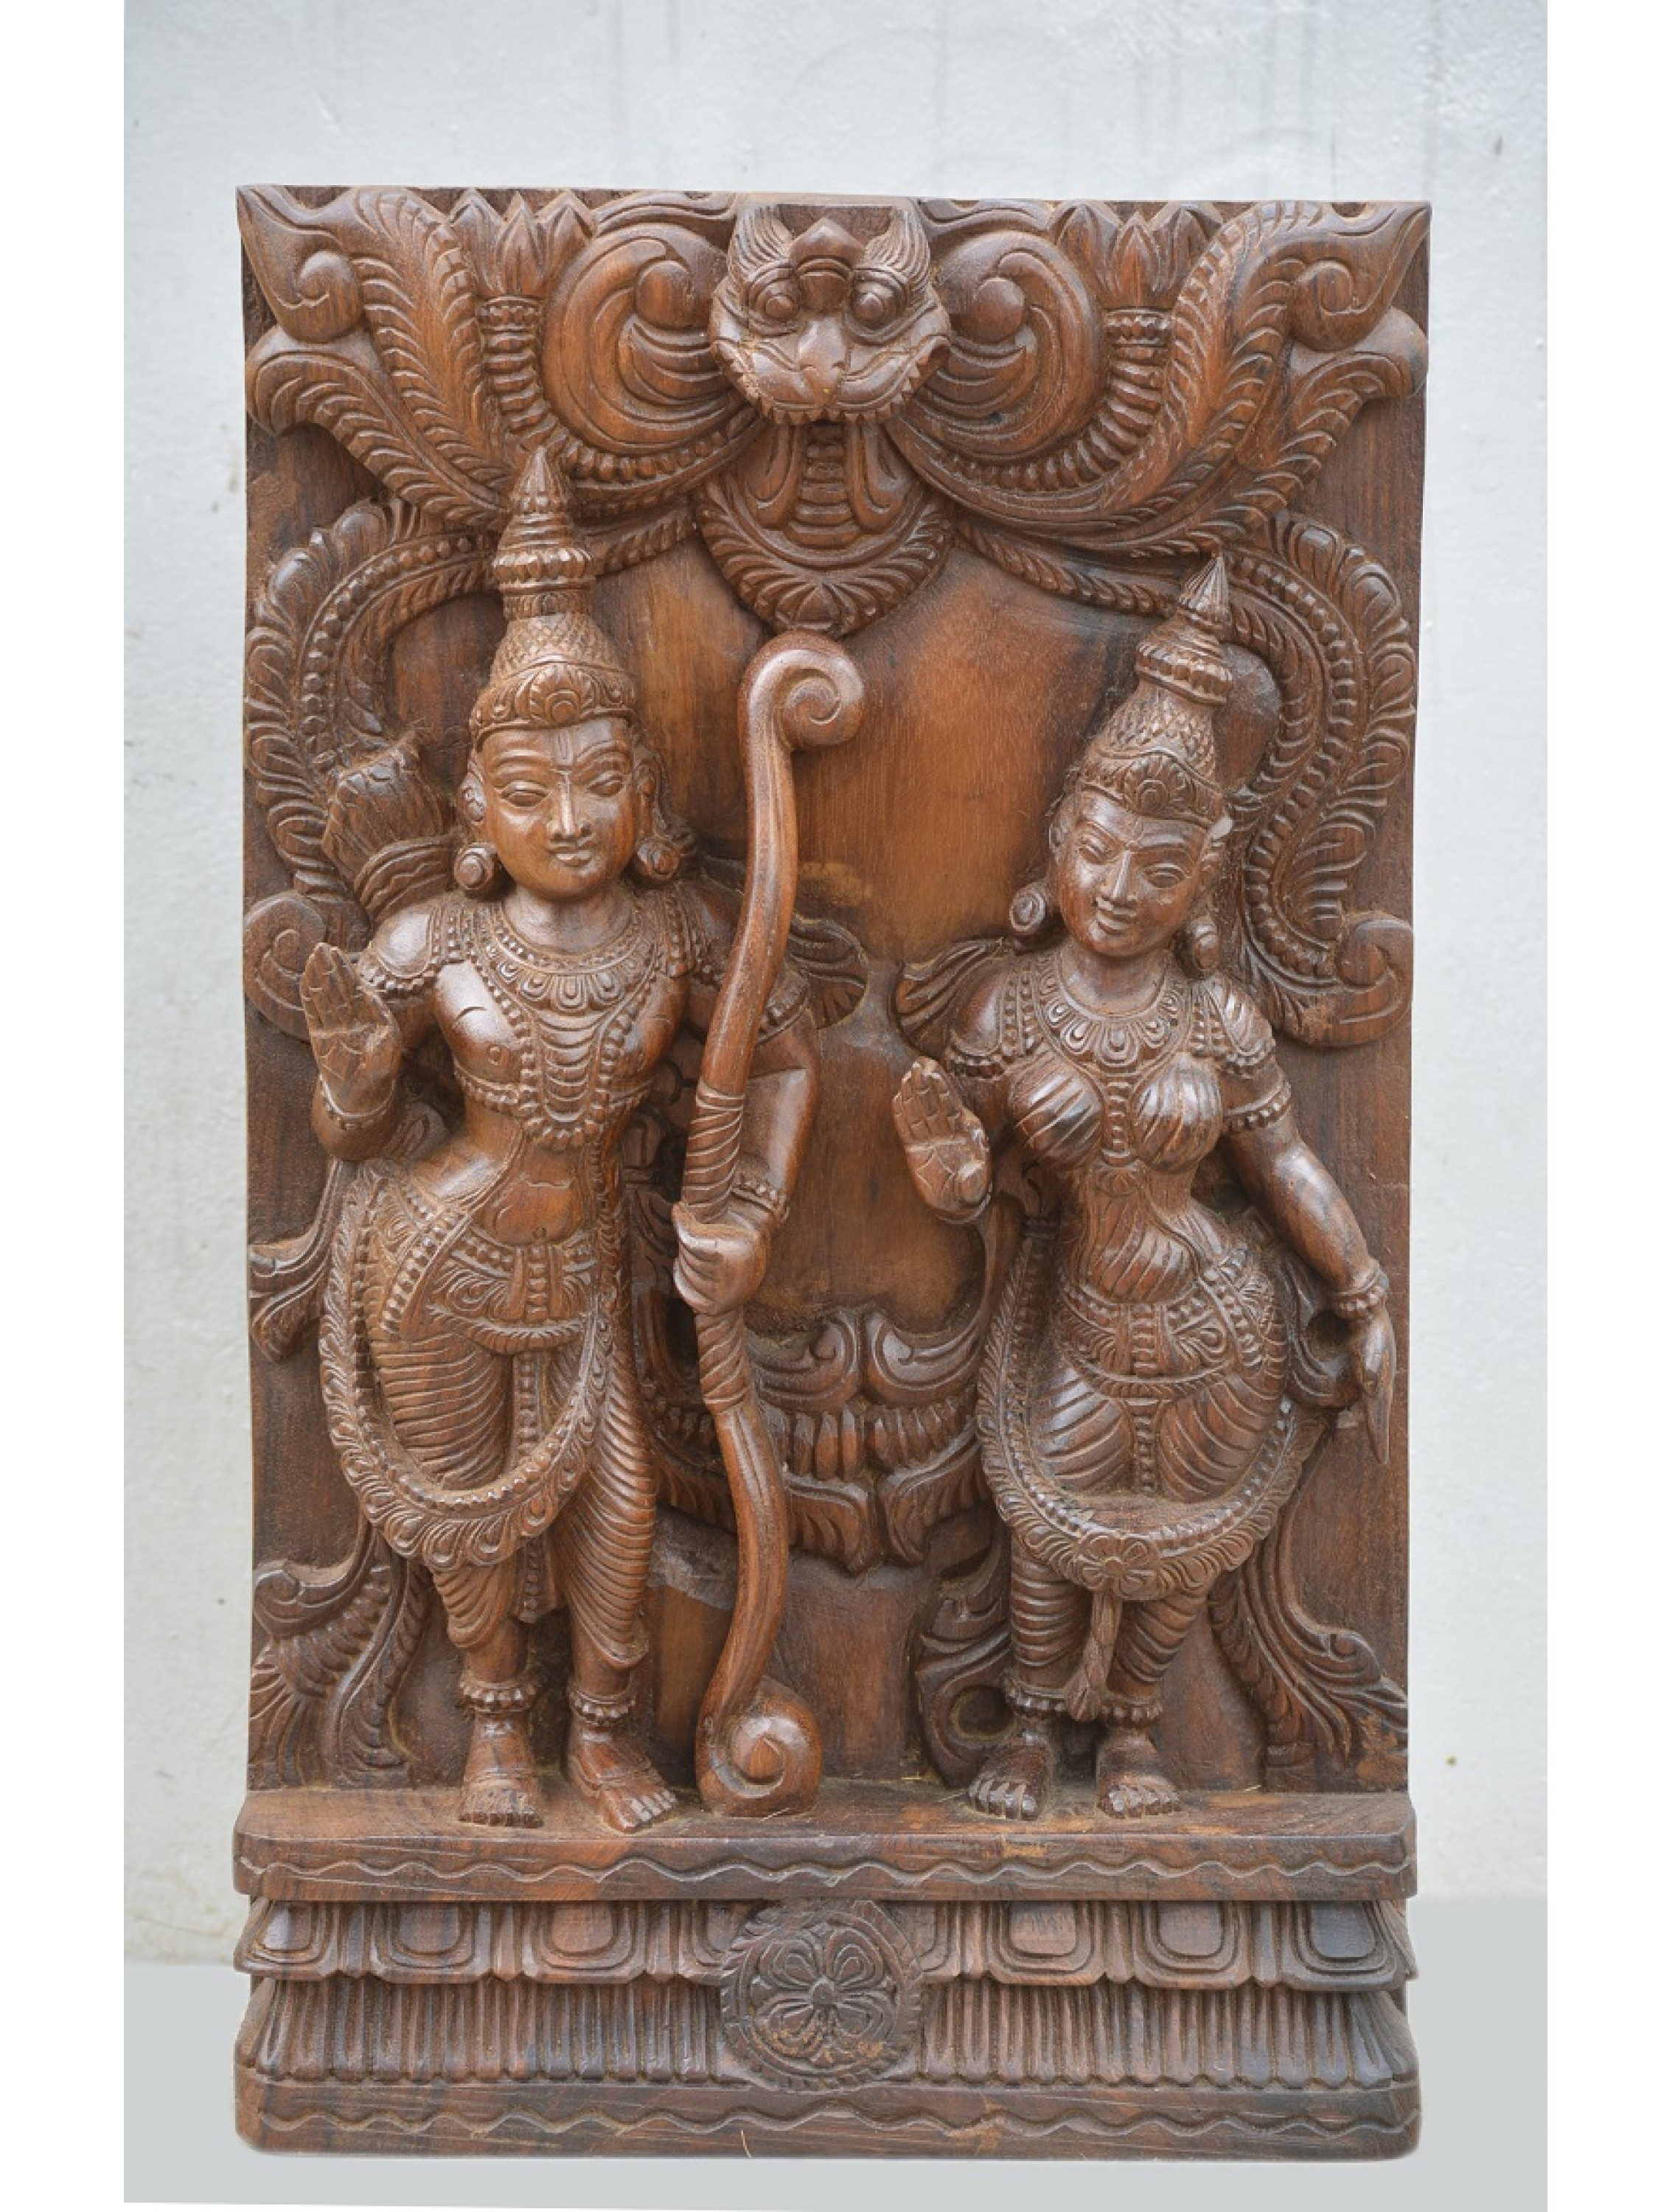 Ram,Sita Wooden Sculpture with Naasithalai